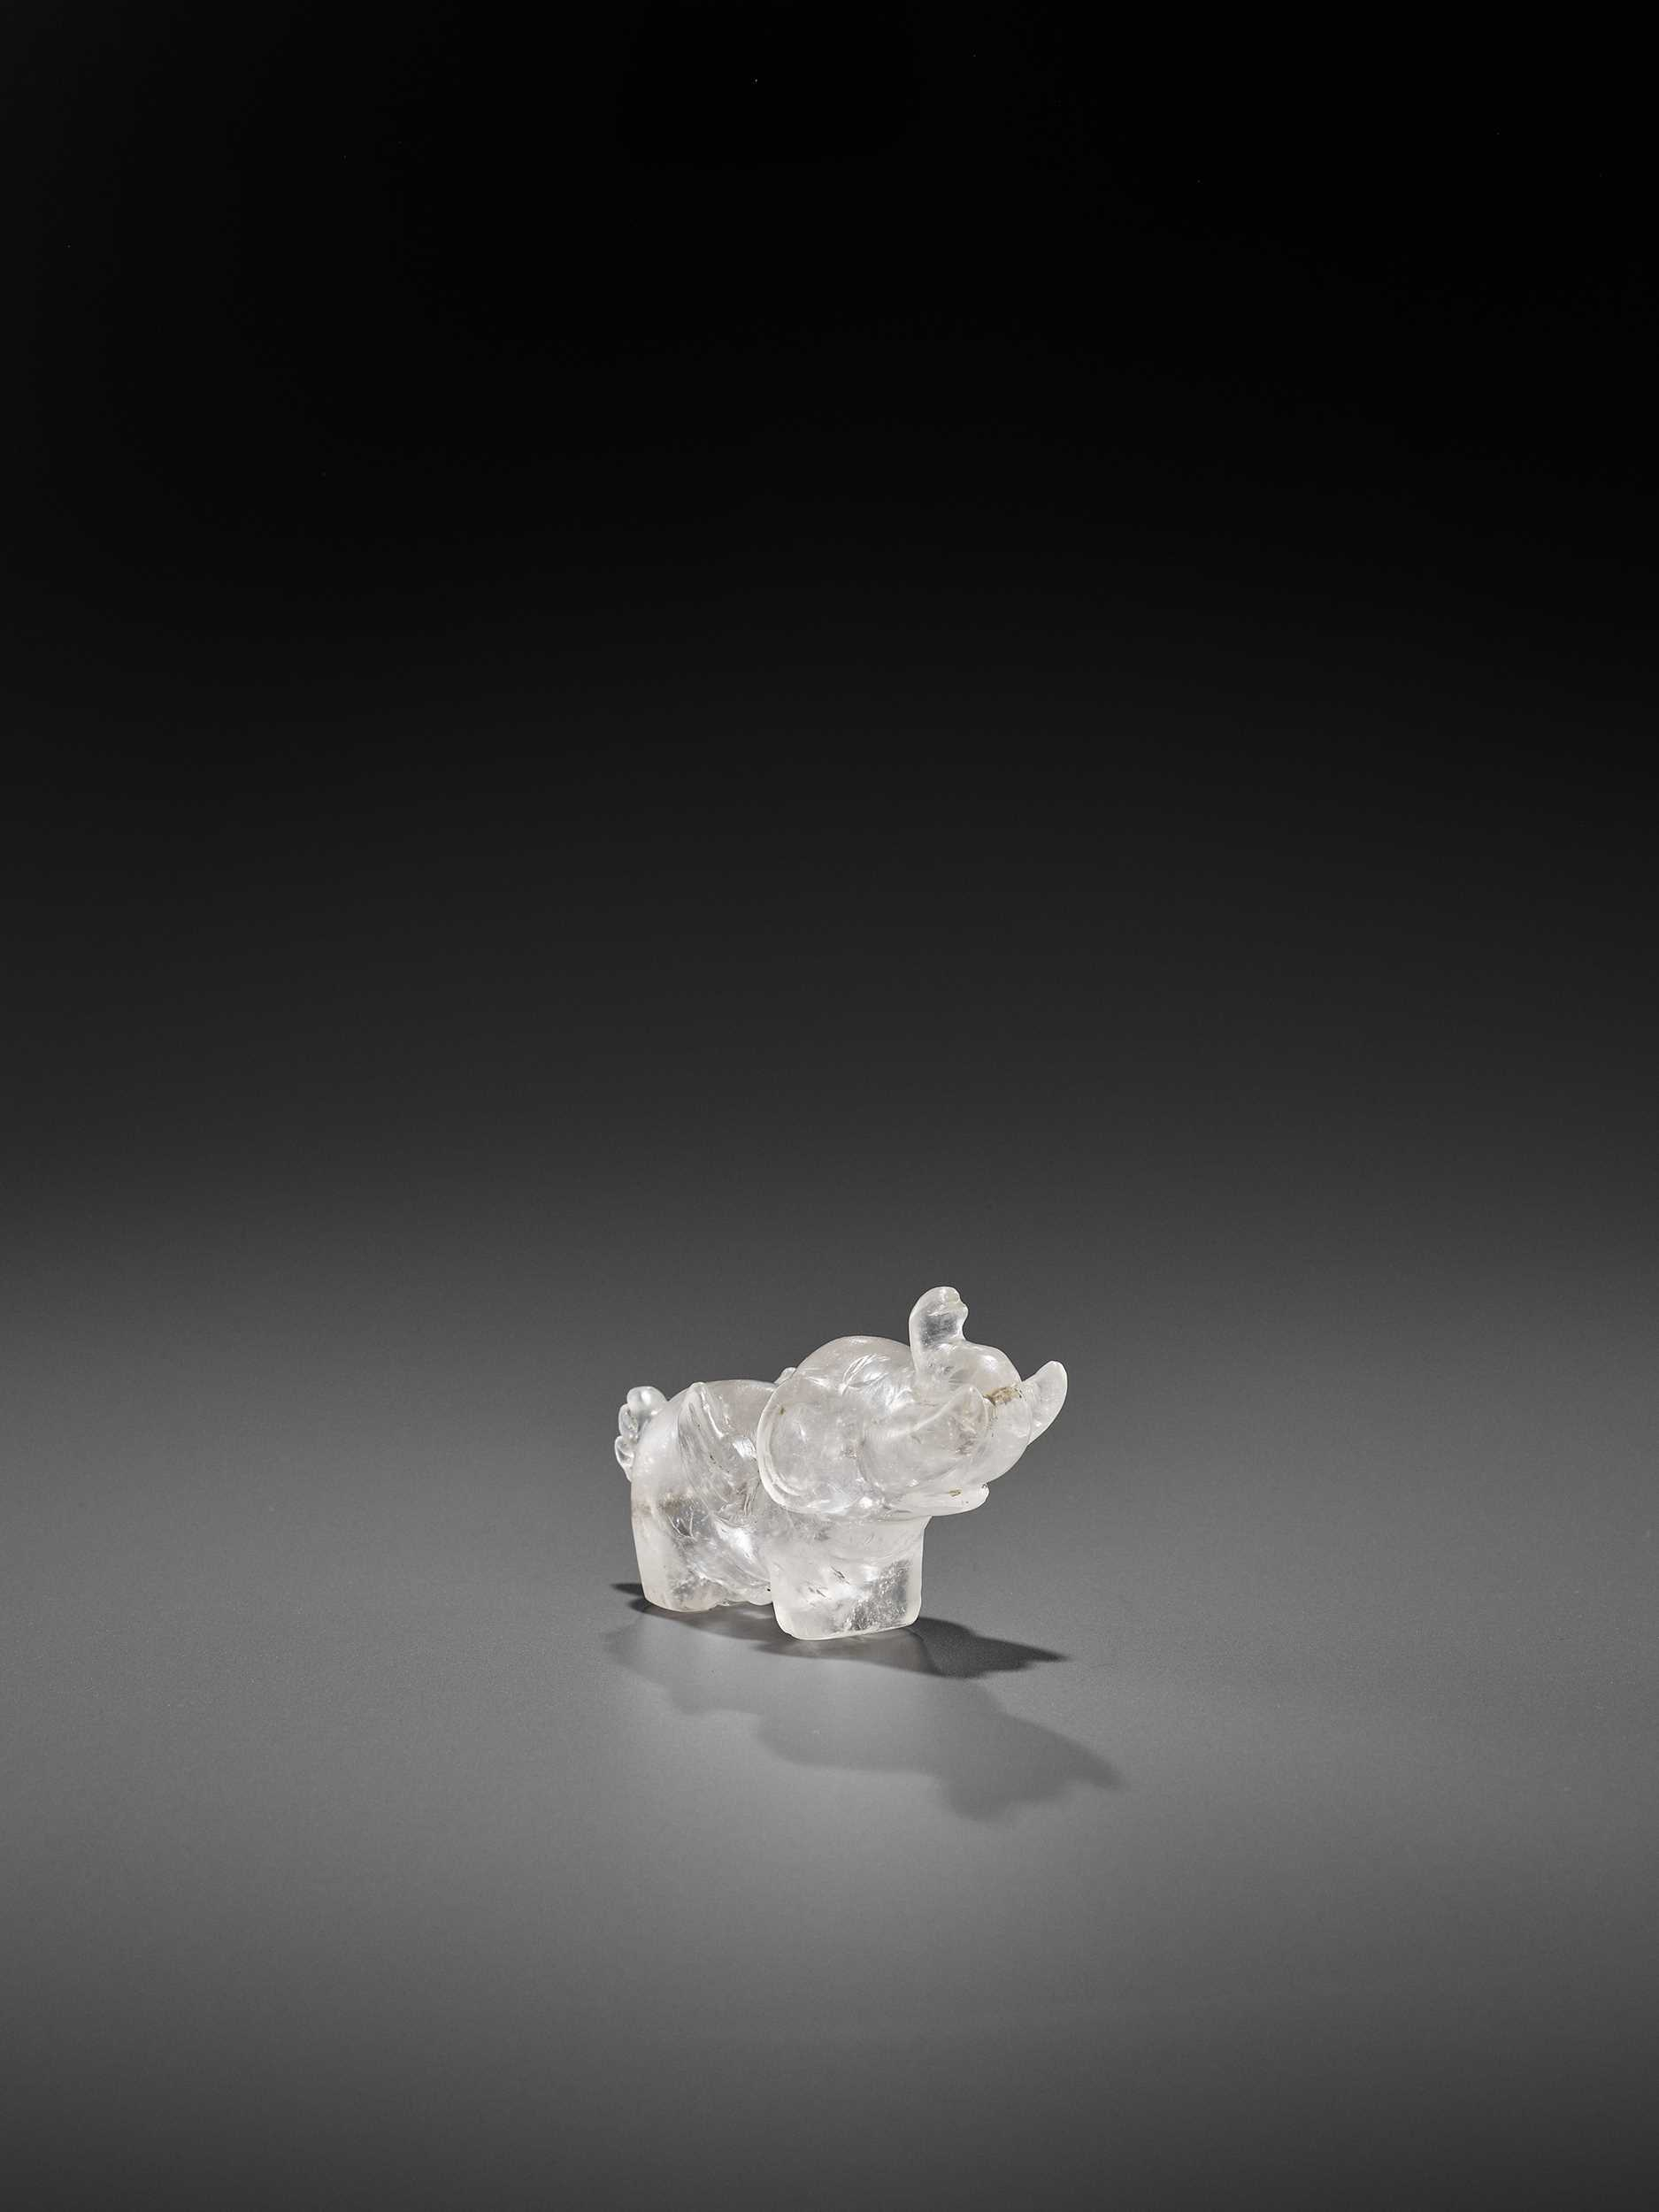 A RARE AND EXCEPTIONAL PYU ROCK CRYSTAL TALISMAN DEPICTING A MYTHICAL WAR ELEPHANT